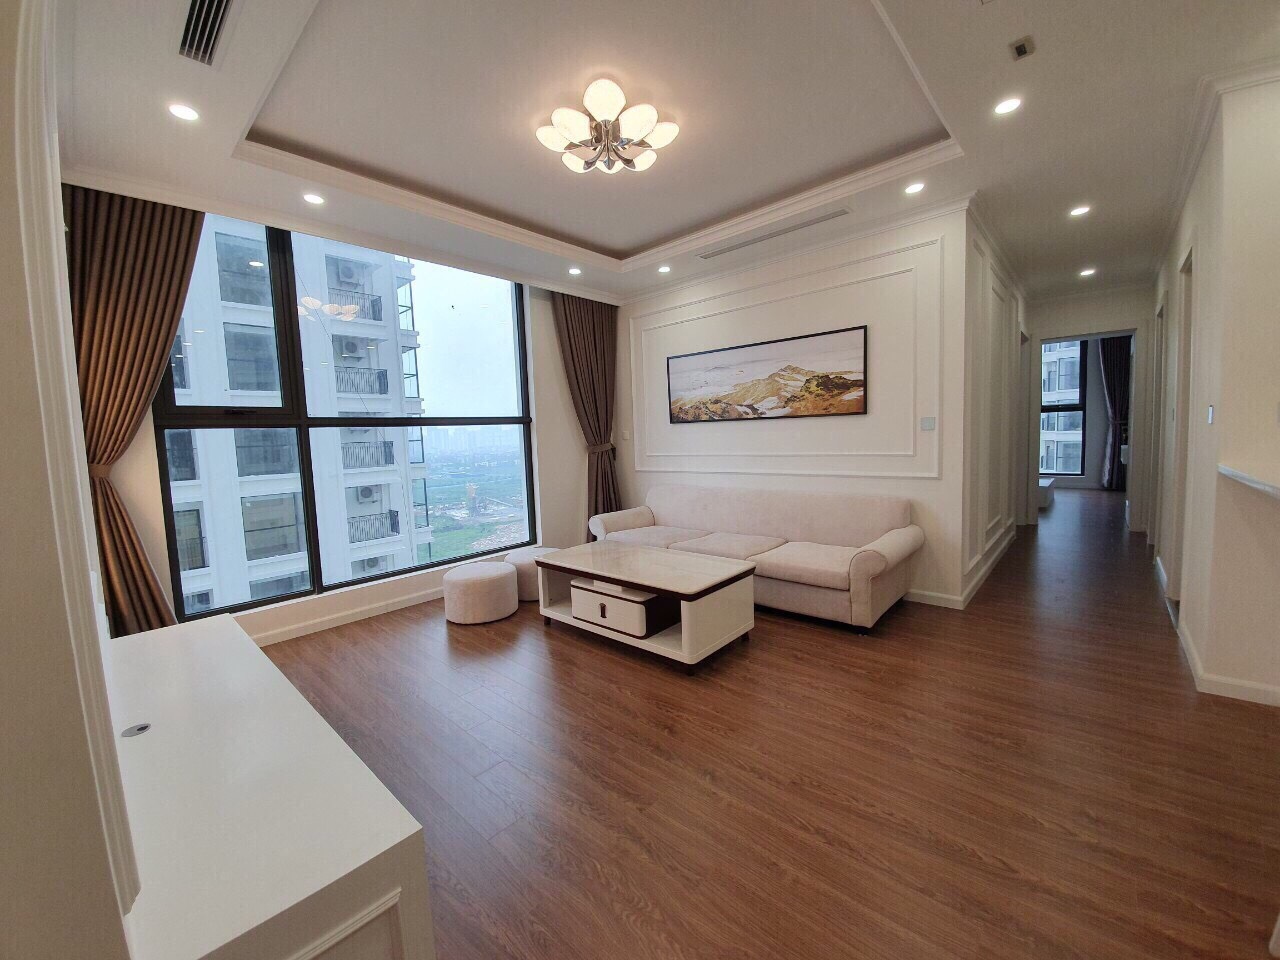 Apartment design inspired by European style